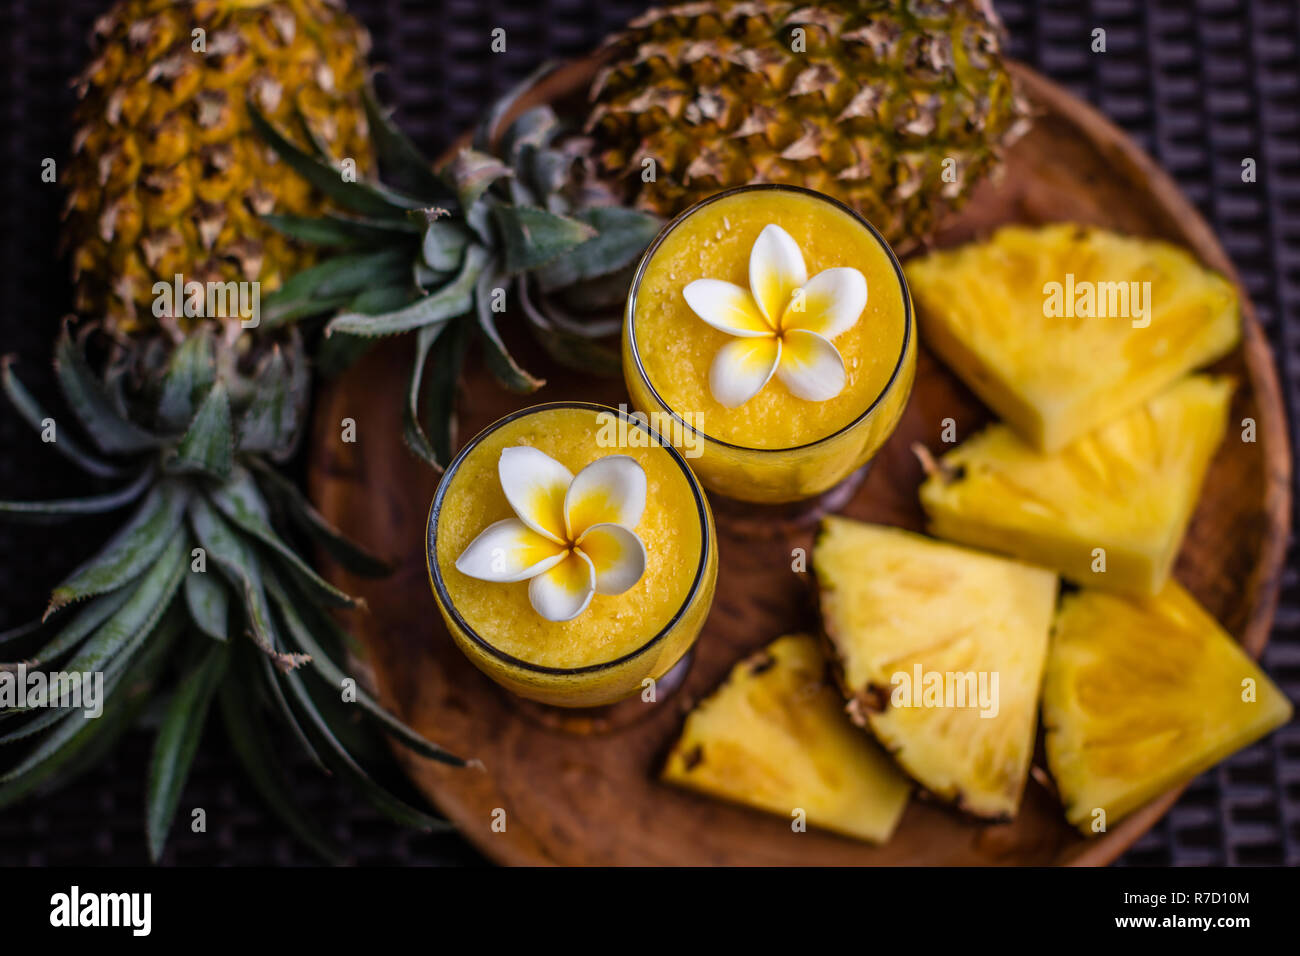 Two Glasses Of Fresh Pineapple Juice Decorated With Plumeria Flowers